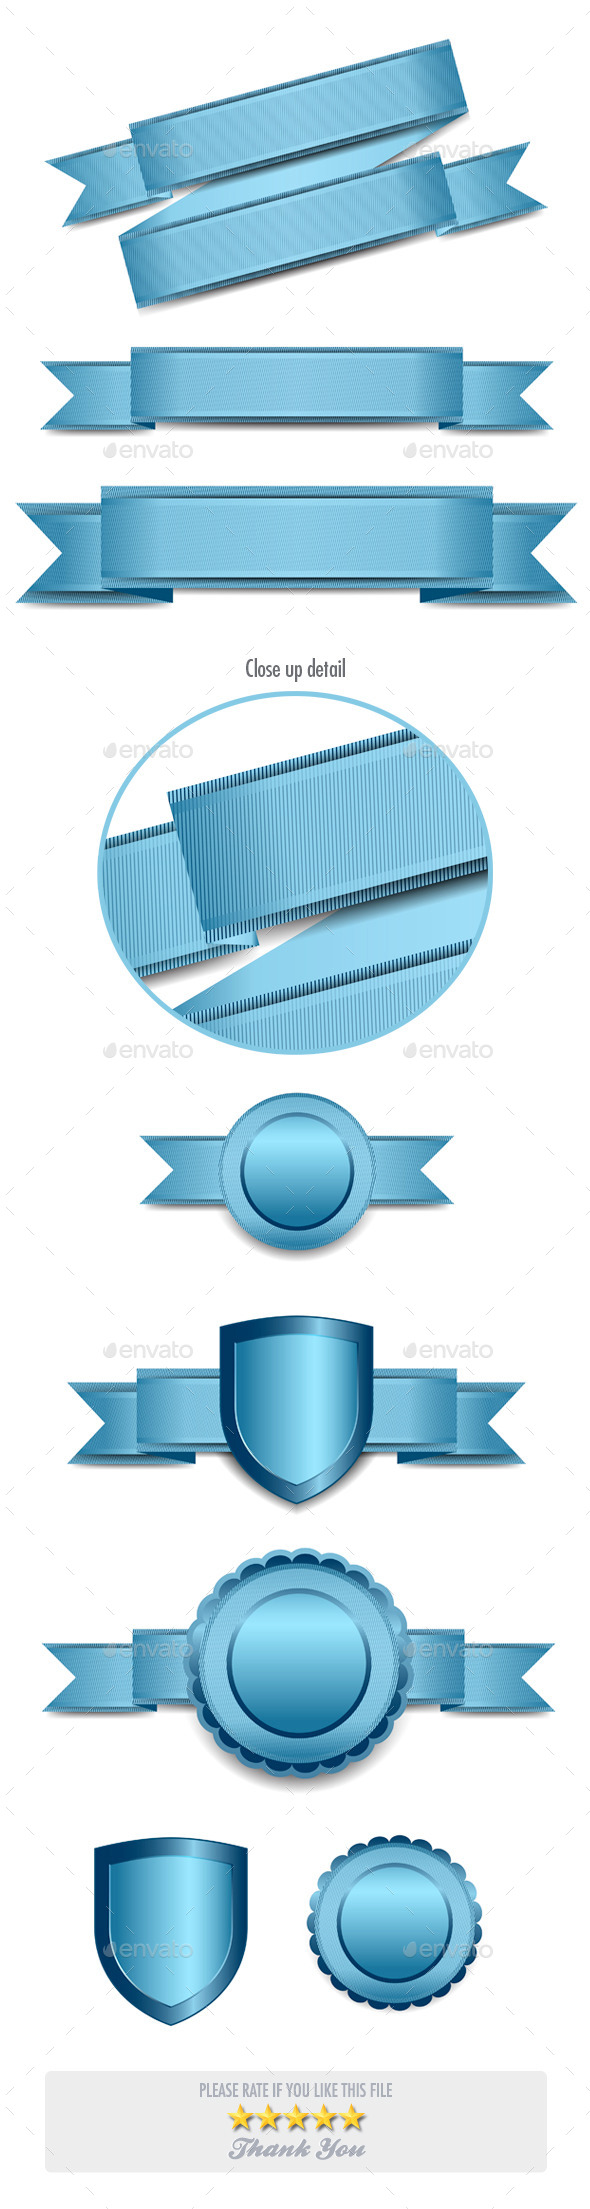 Banners Elements - Web Elements Vectors